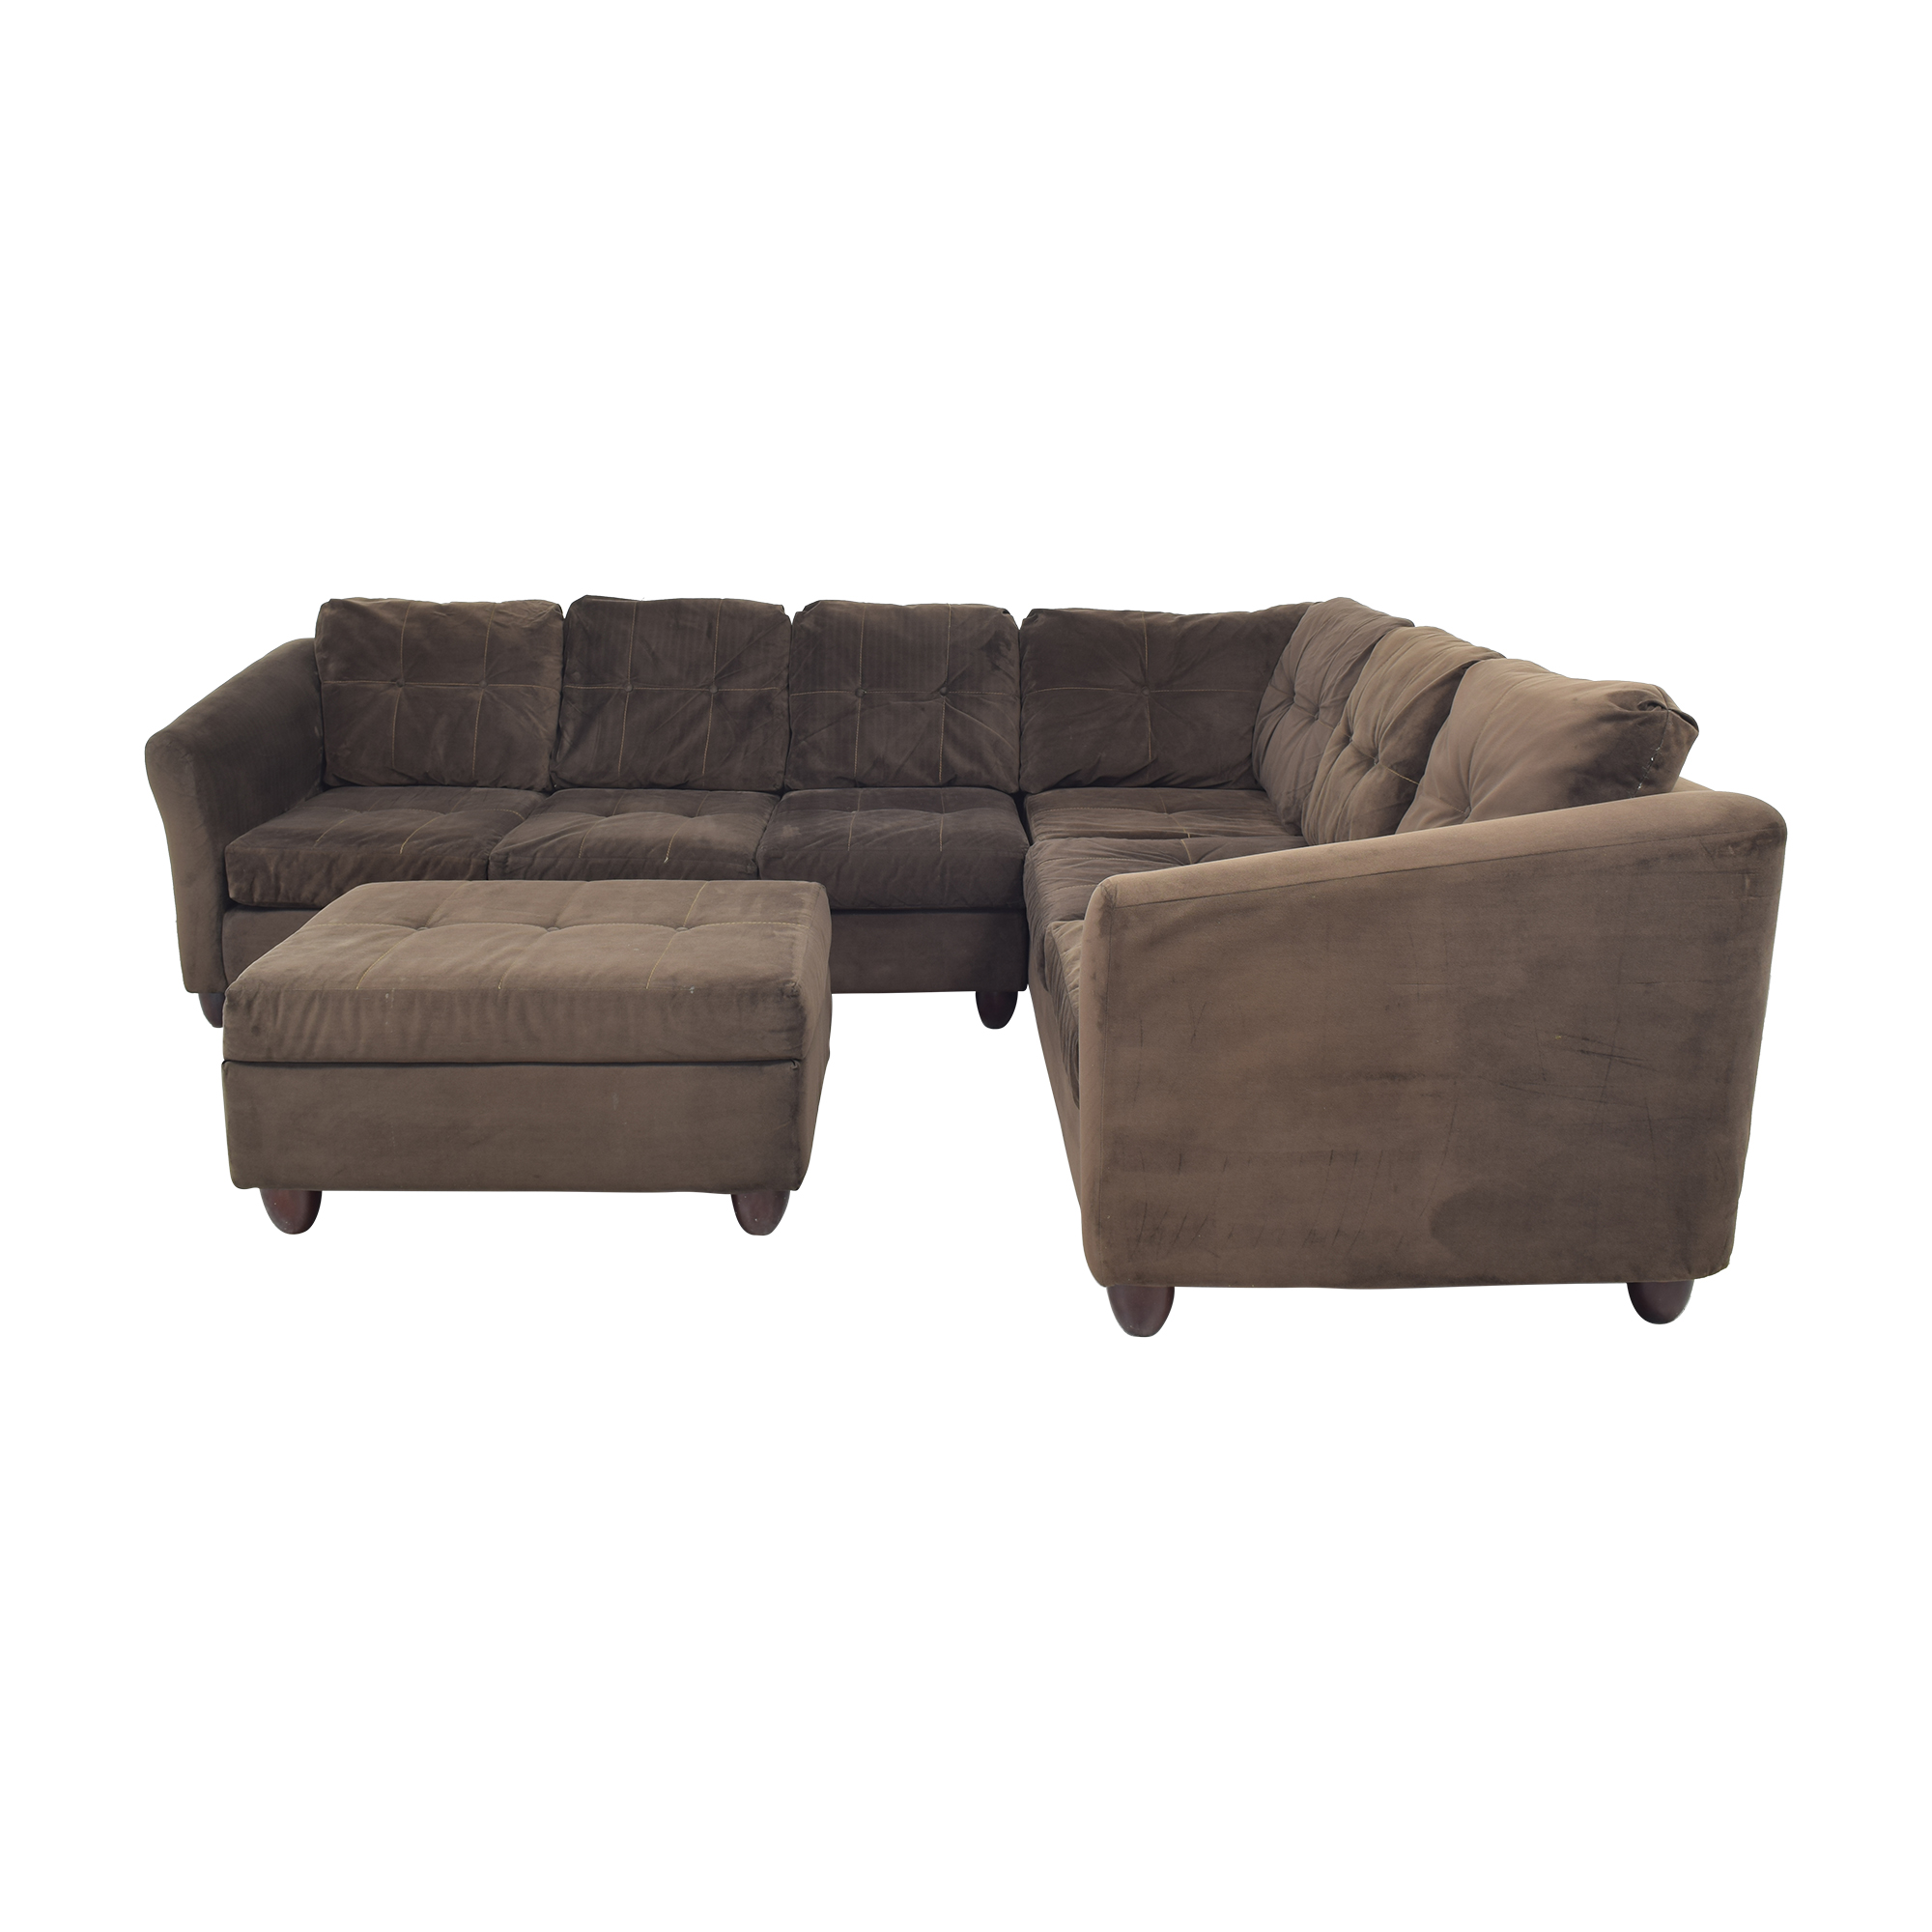 Raymour & Flanigan Raymour & Flanigan Brown Tufted Microsuede L-Shaped Sectional and Ottoman discount